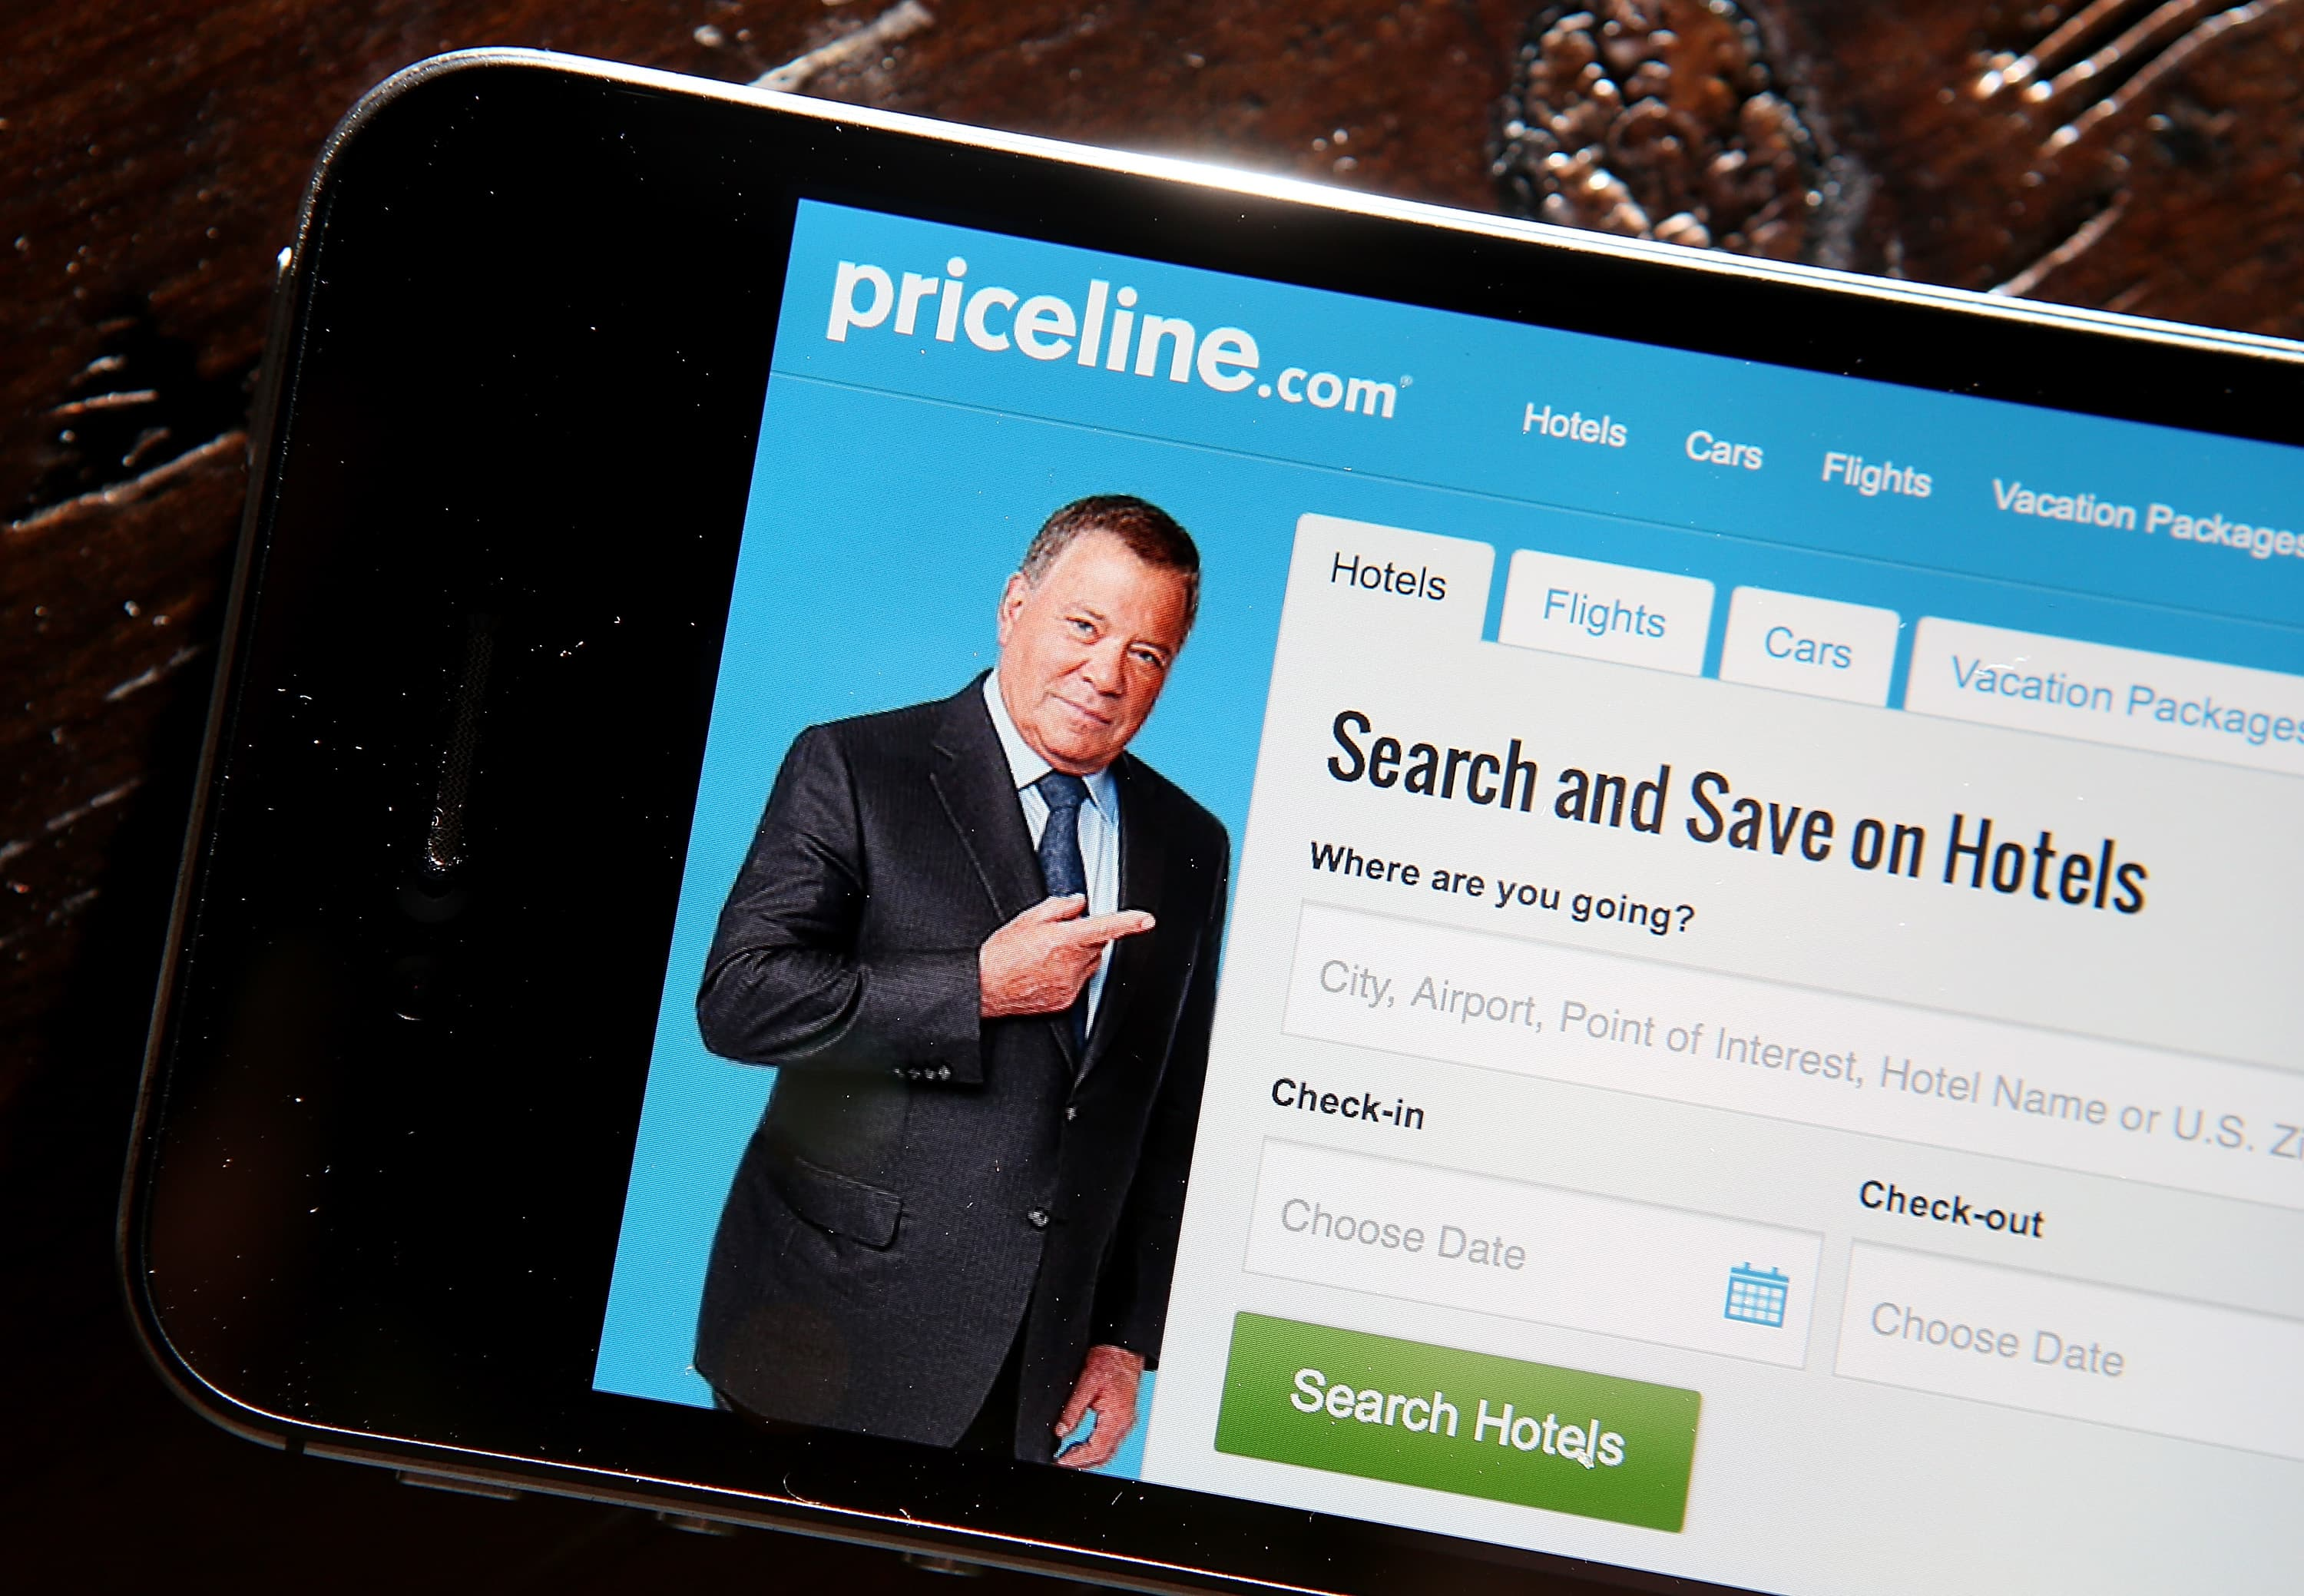 Evercore ISI calls Priceline a top big-data play